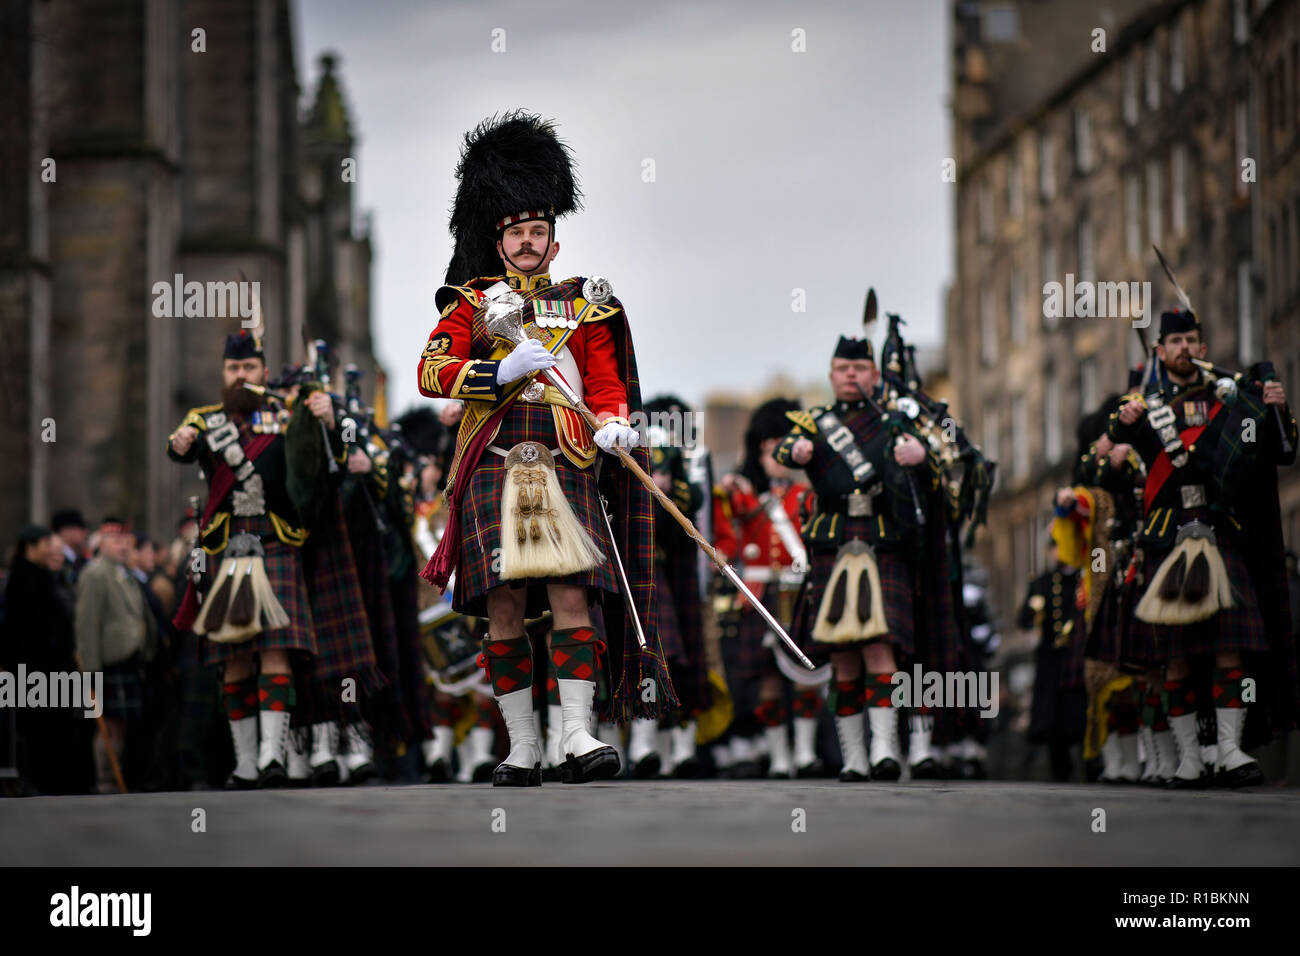 Edinburgh November 11 2018; Centenary Armistice Day commemorations takes place on the Royal Mile with First Minister of Scotland Nicola Sturgeon in attendance. Credit: Steven Scott Taylor/Alamy Live News - Stock Image